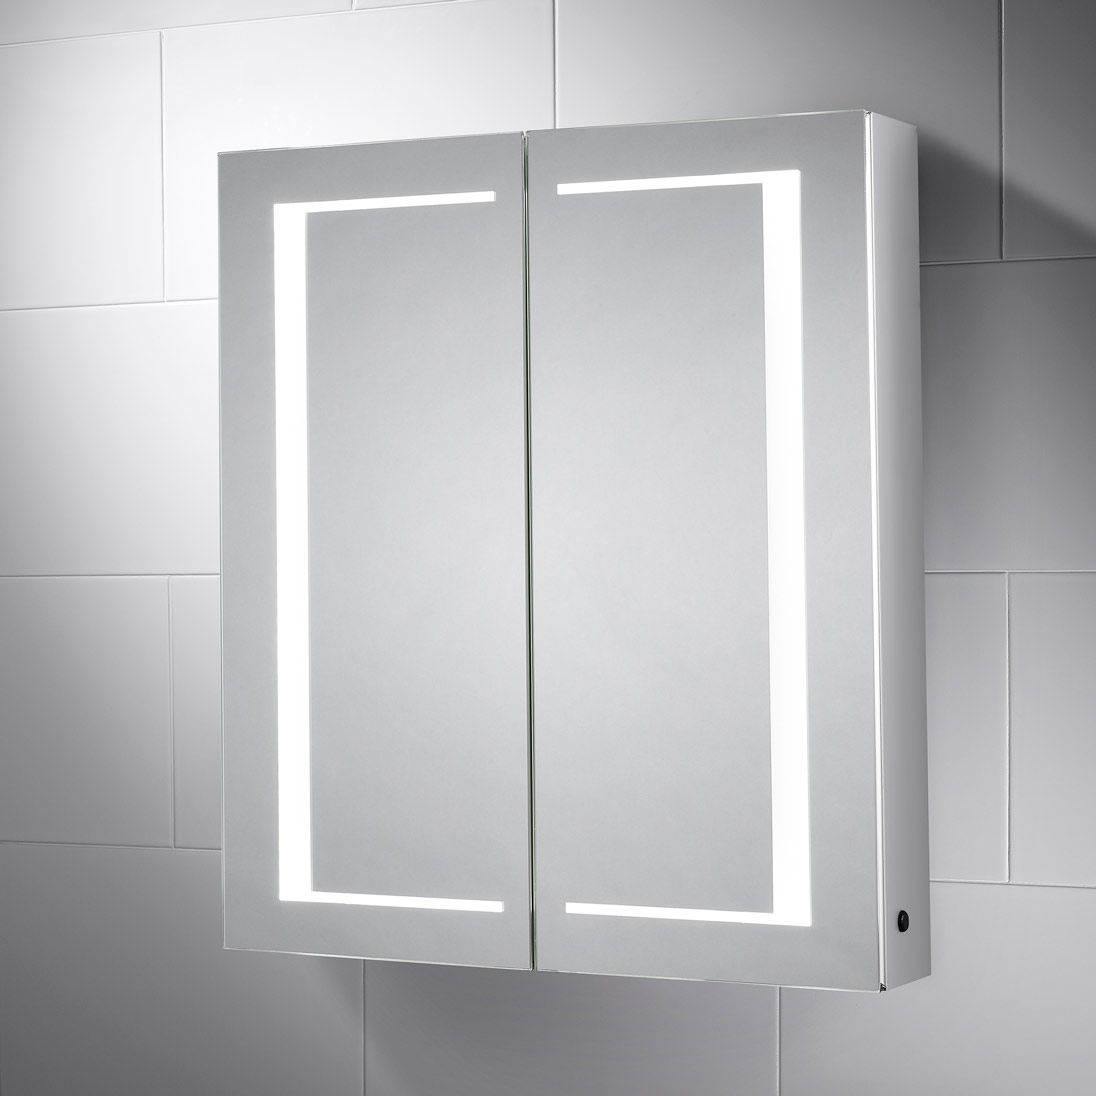 Nimbus Led Illuminated Double Sided Bathroom Cabinet Mirror Pebble in sizing 1096 X 1096